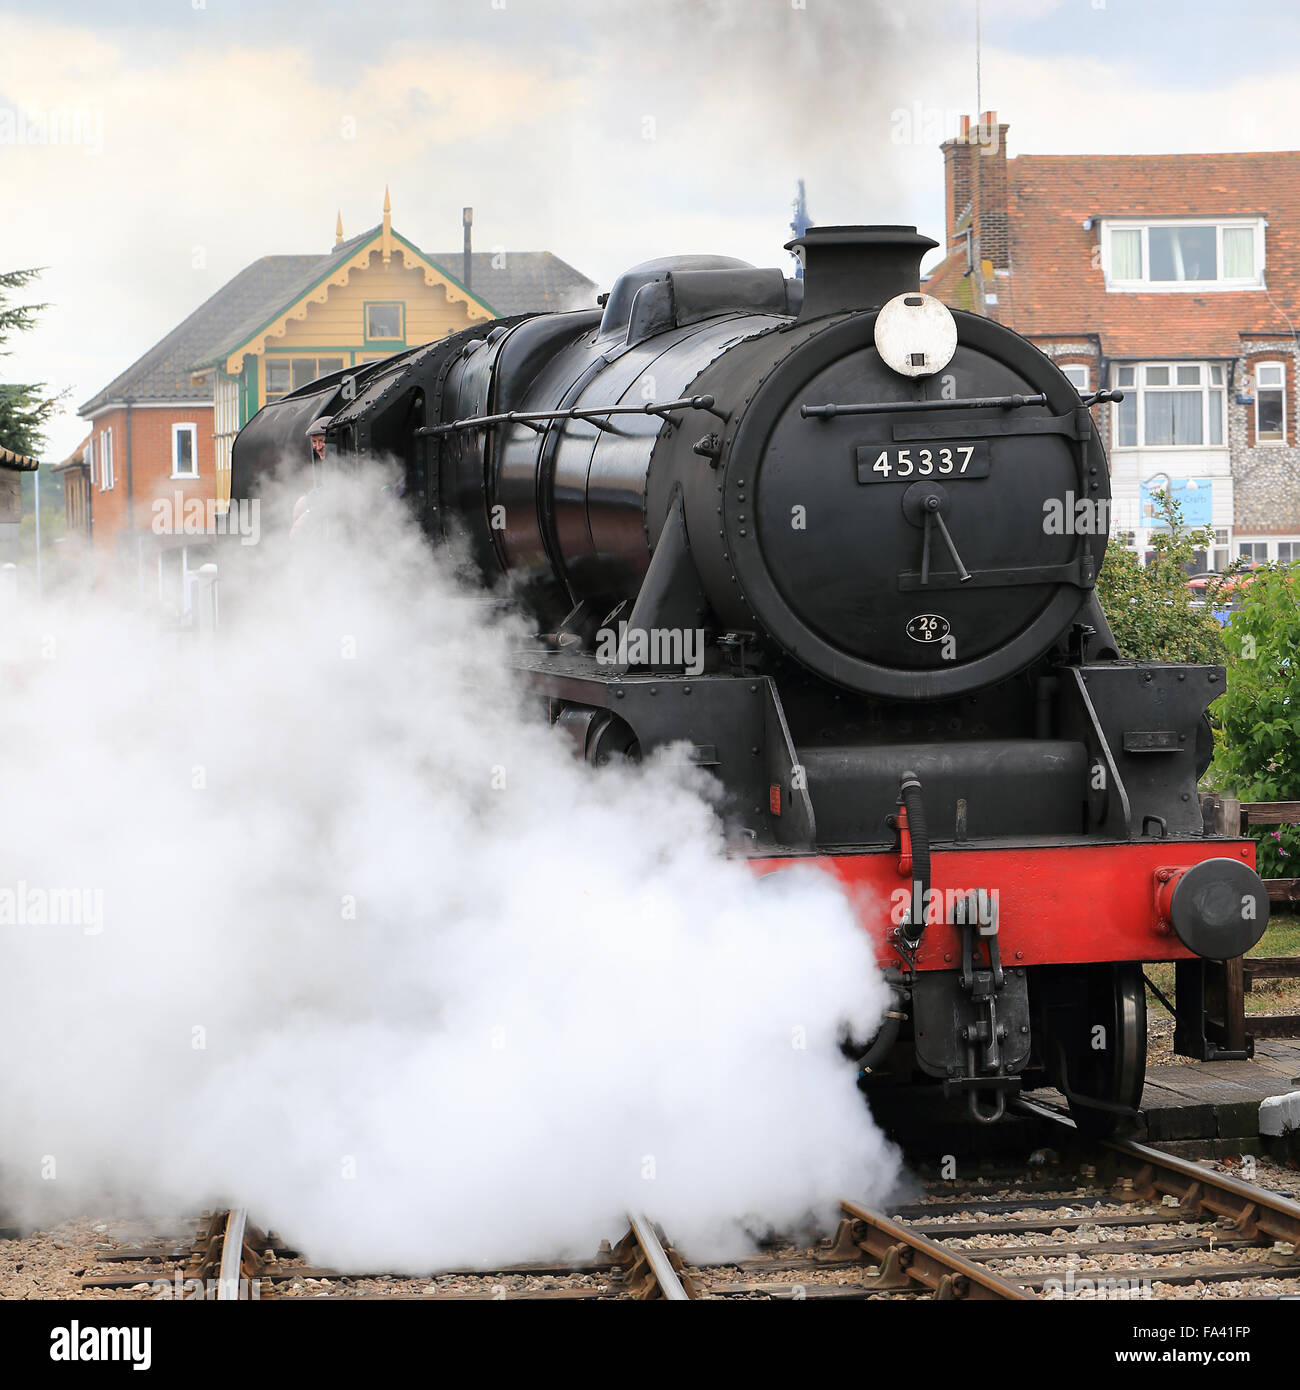 Stanier Black 5Stock Photos and Images